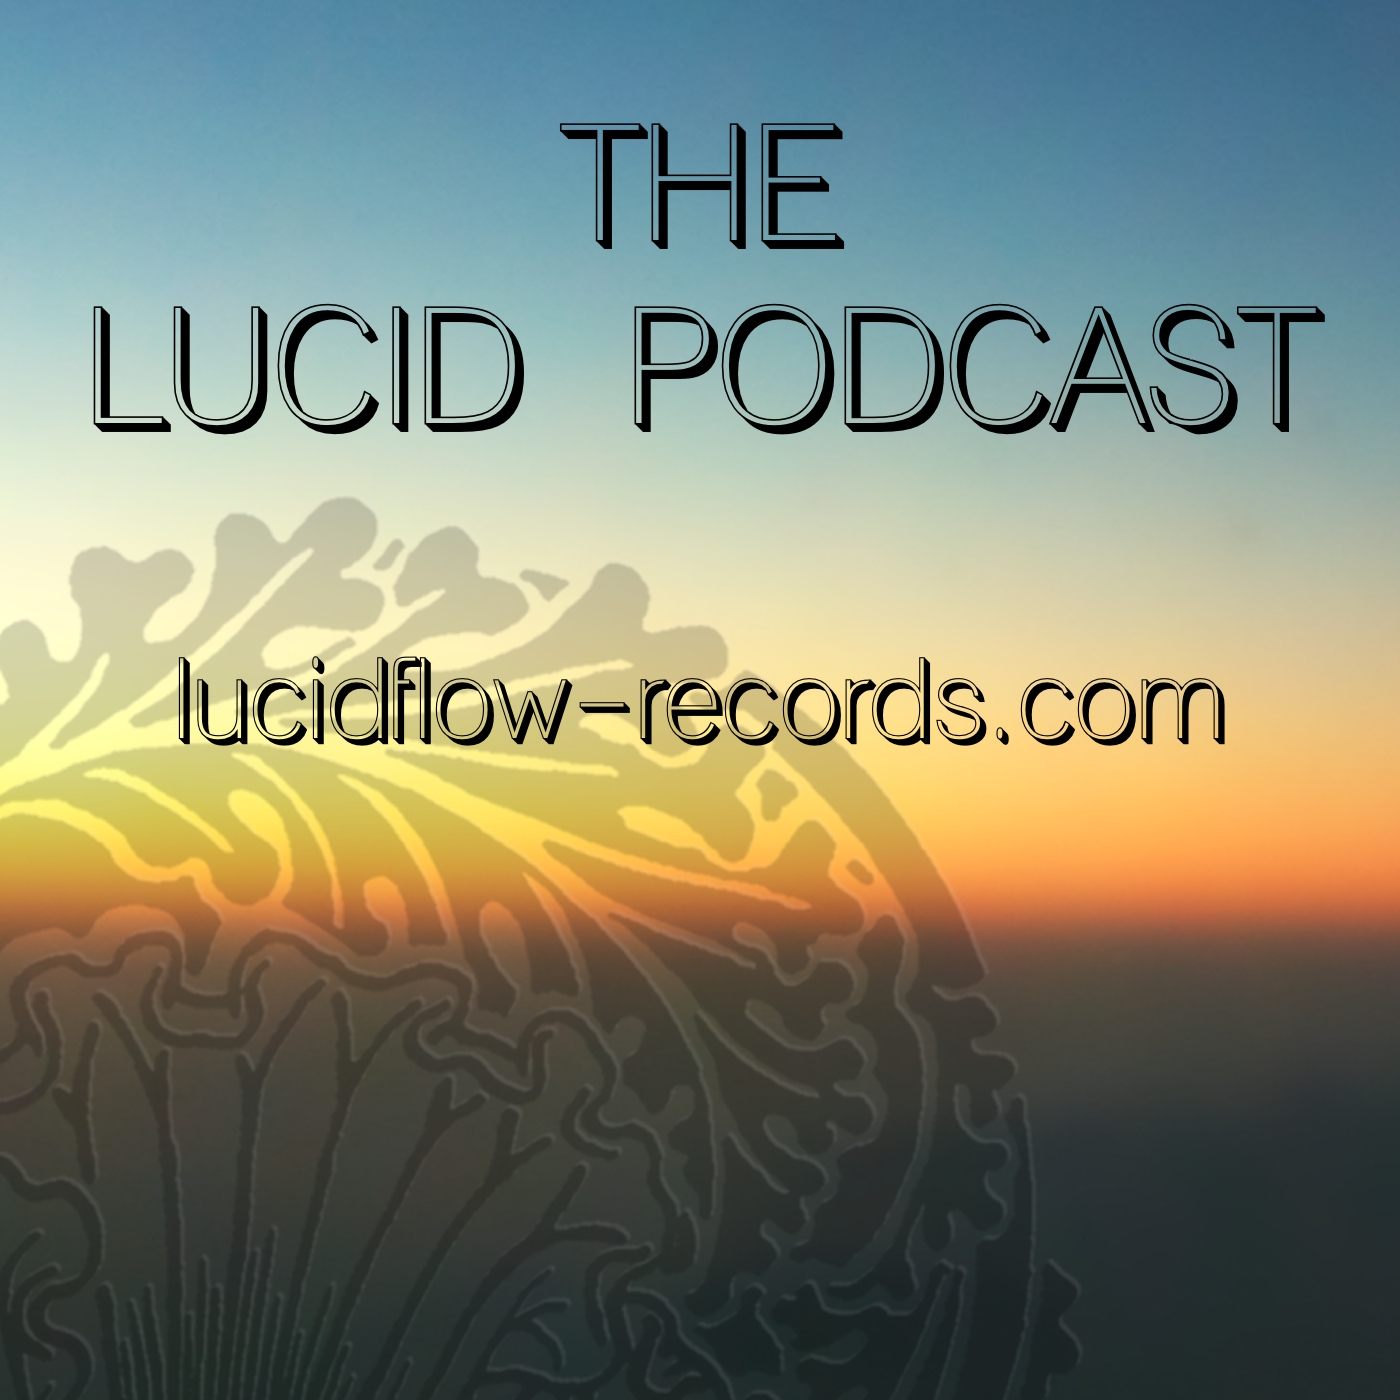 Lucidflow.de - The Lucid Podcast